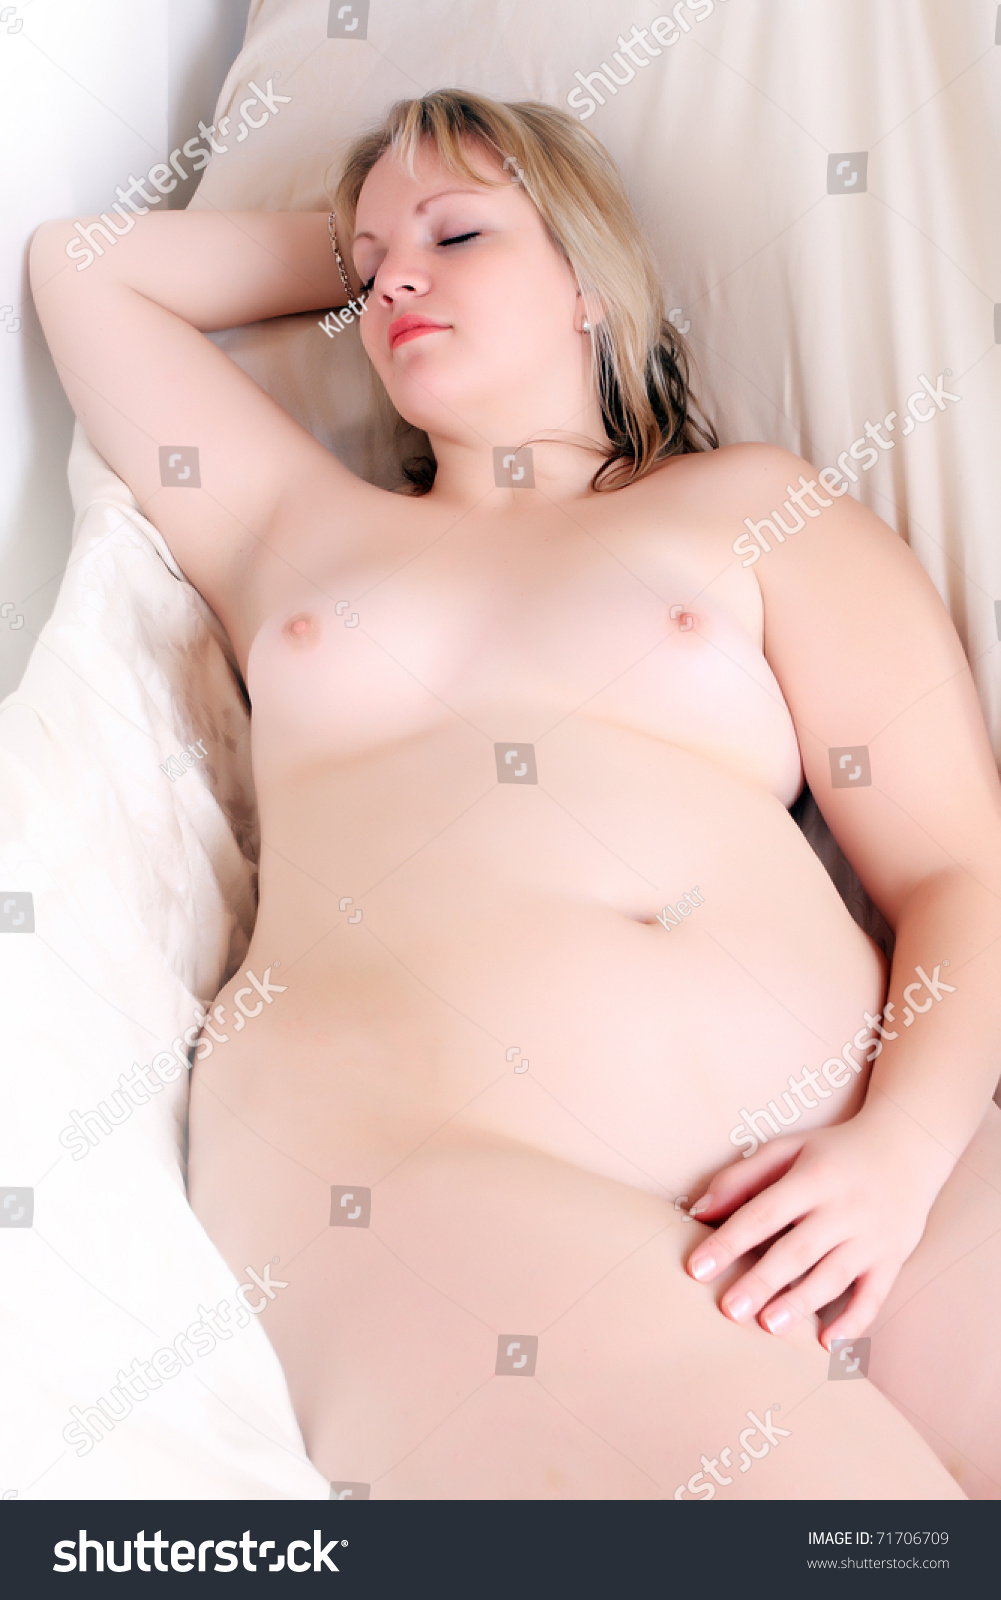 Opinion you pic of fat naked woman very